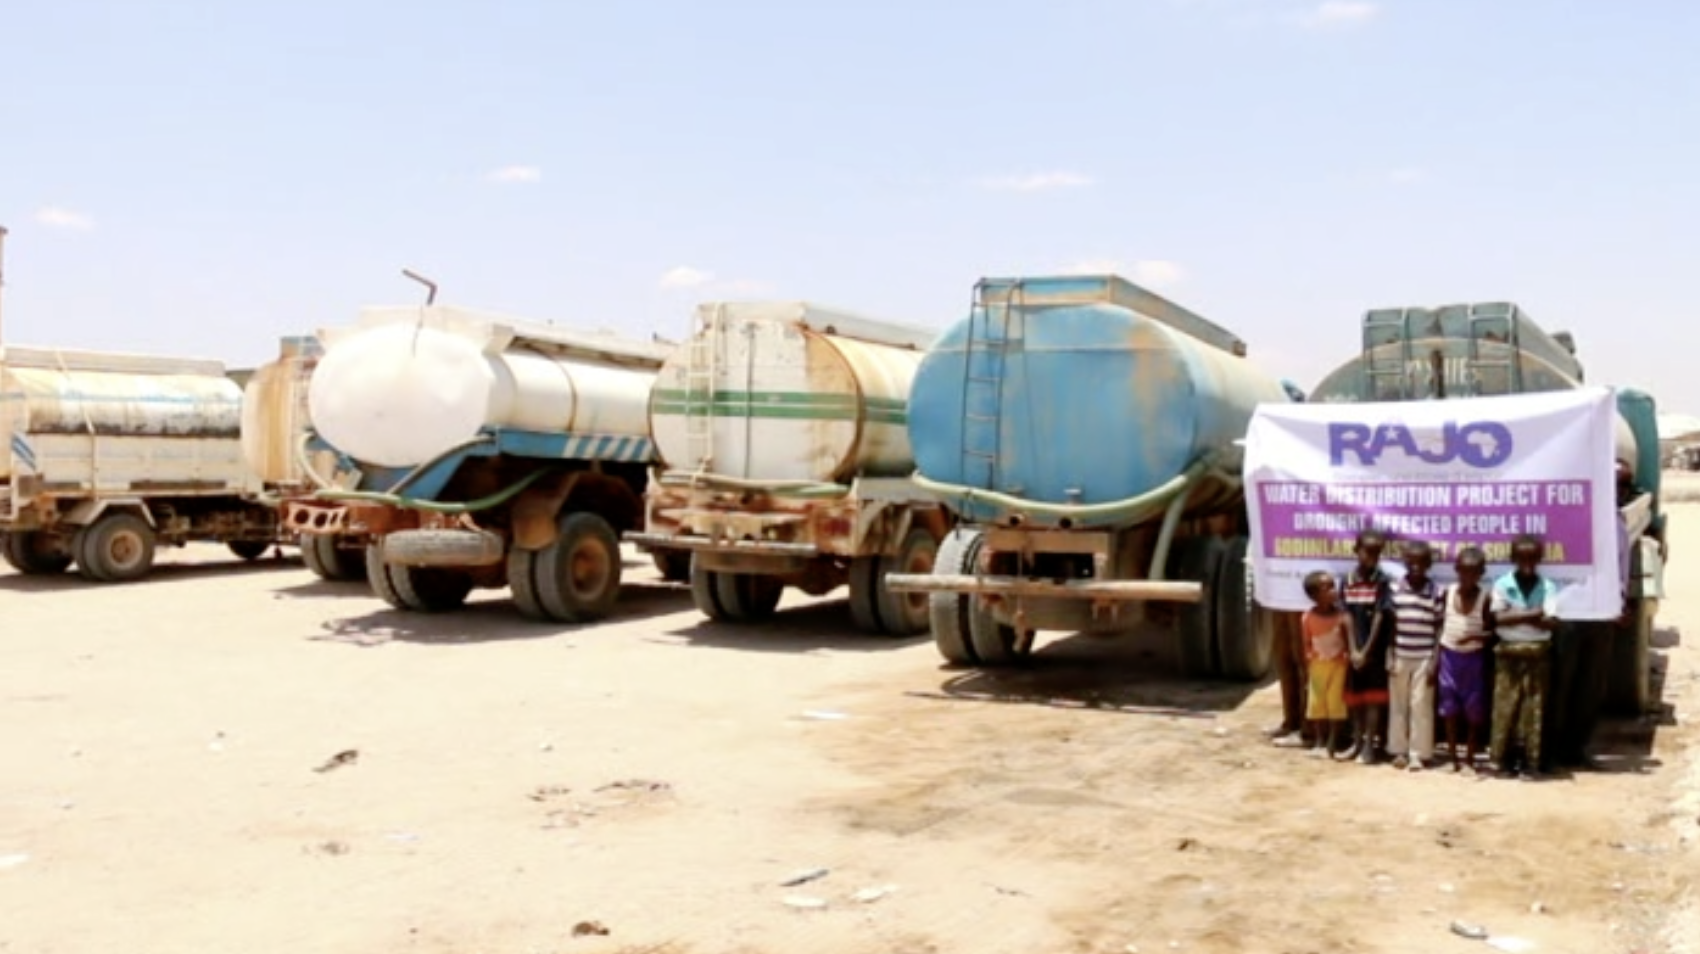 Water well in Adado, the trucks draw the water and then deliver it to the villages